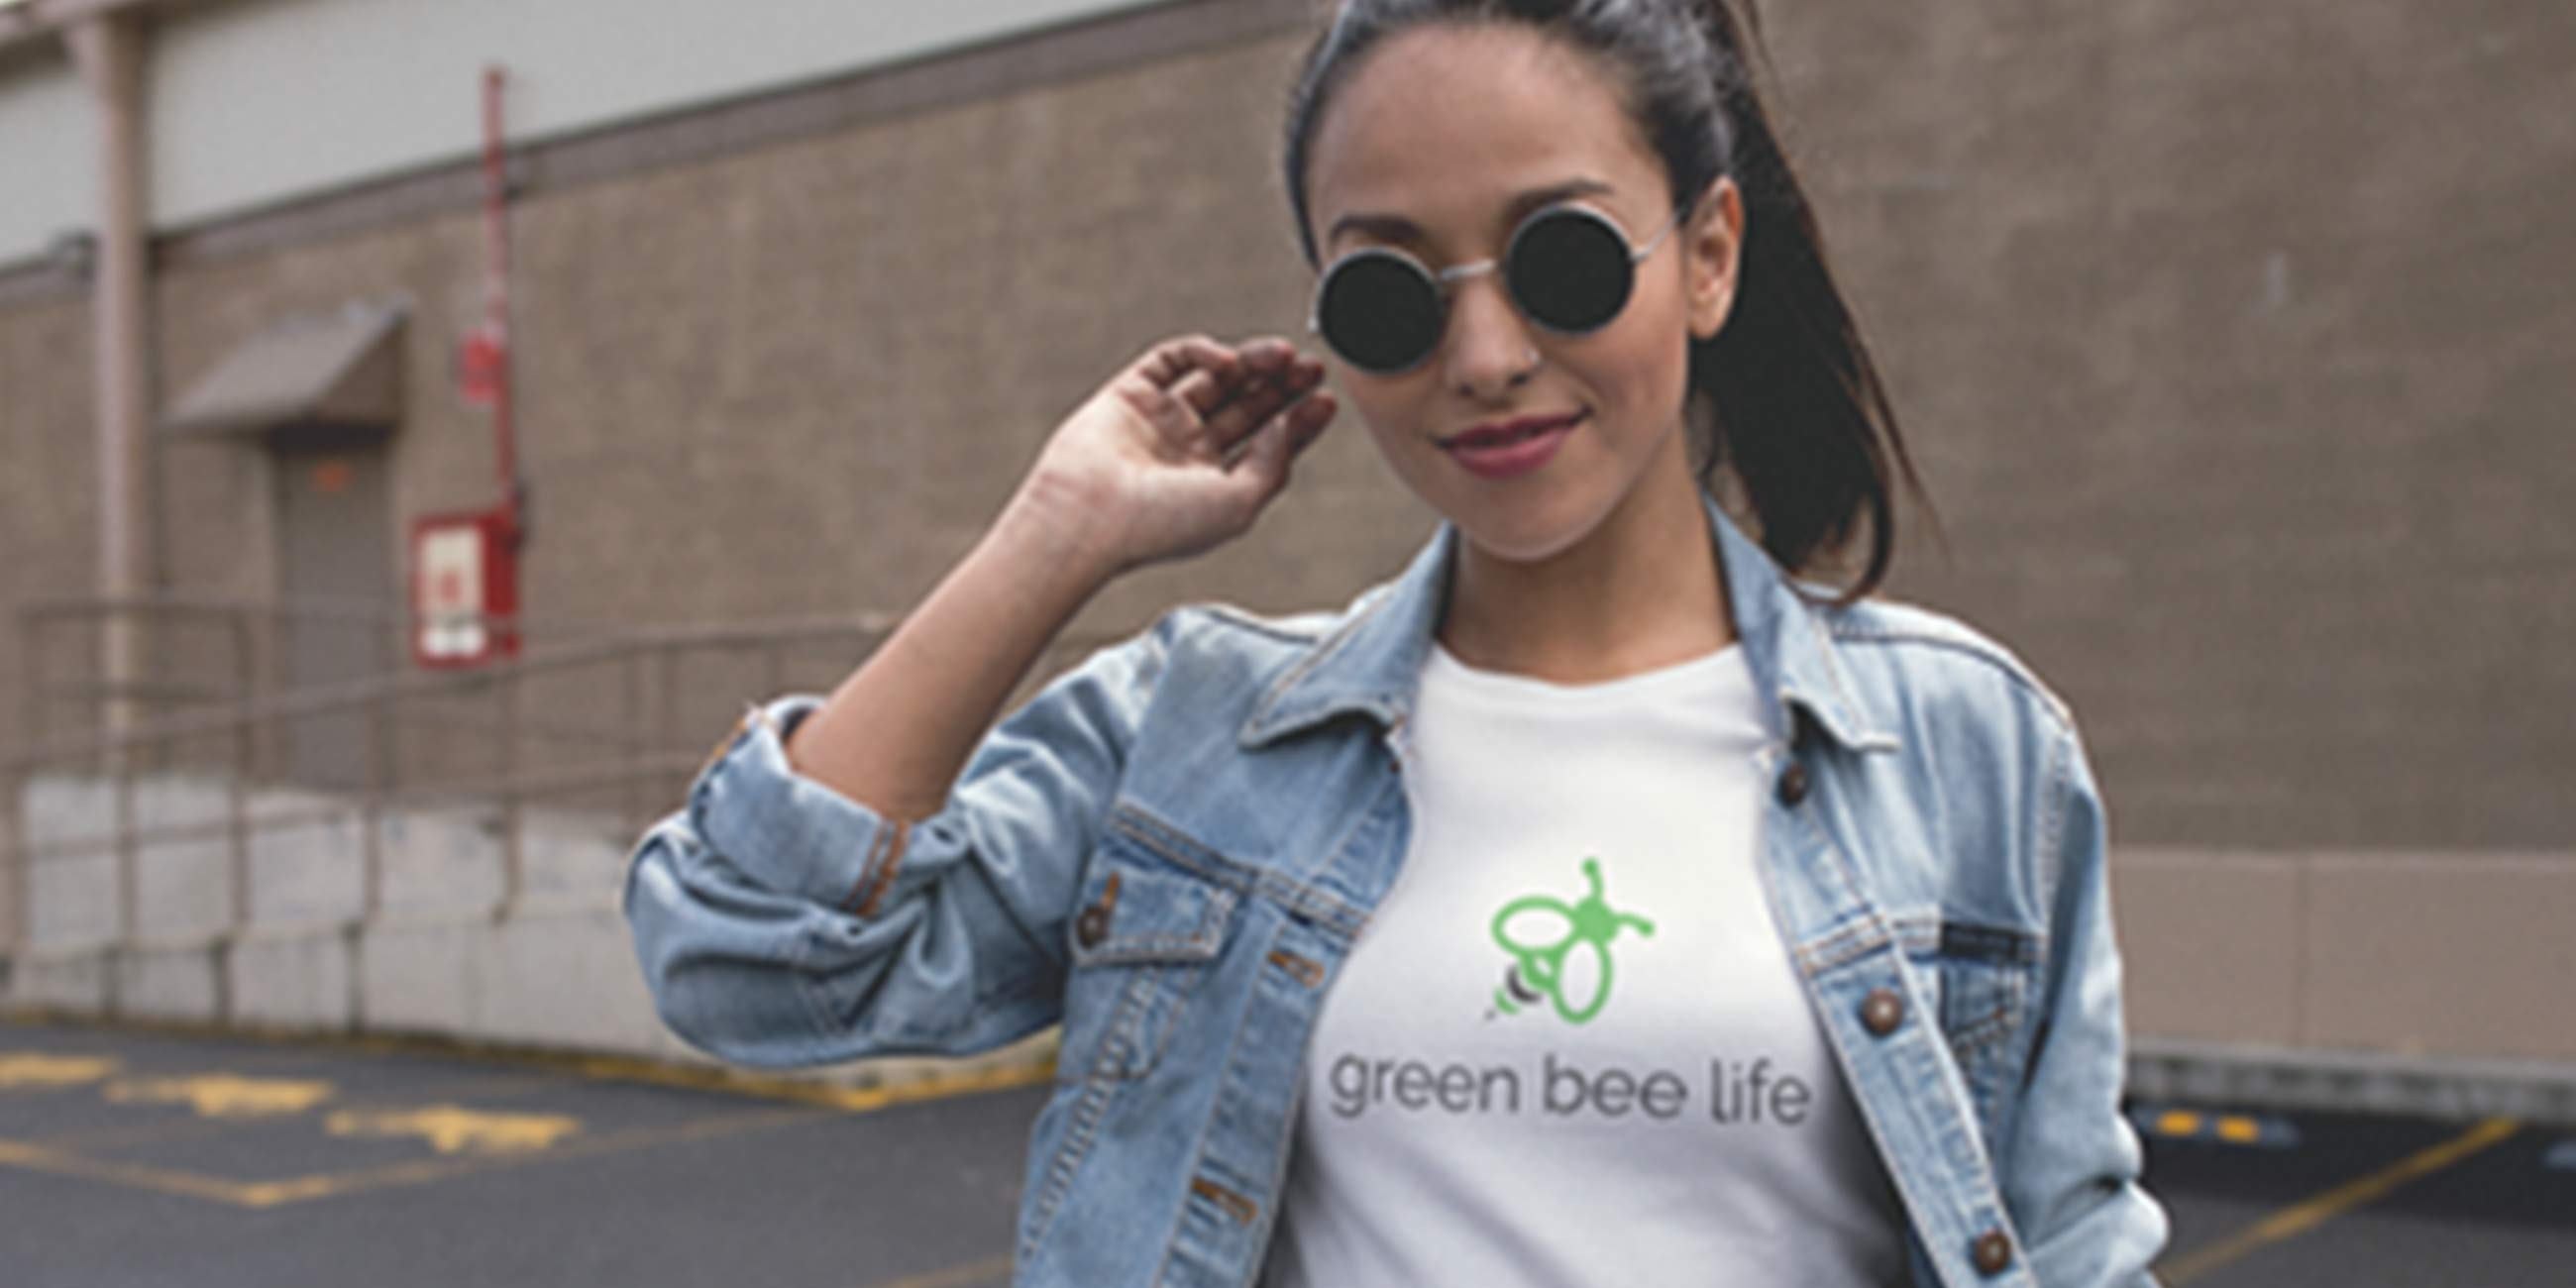 Green Bee Life branding by Bynder Group